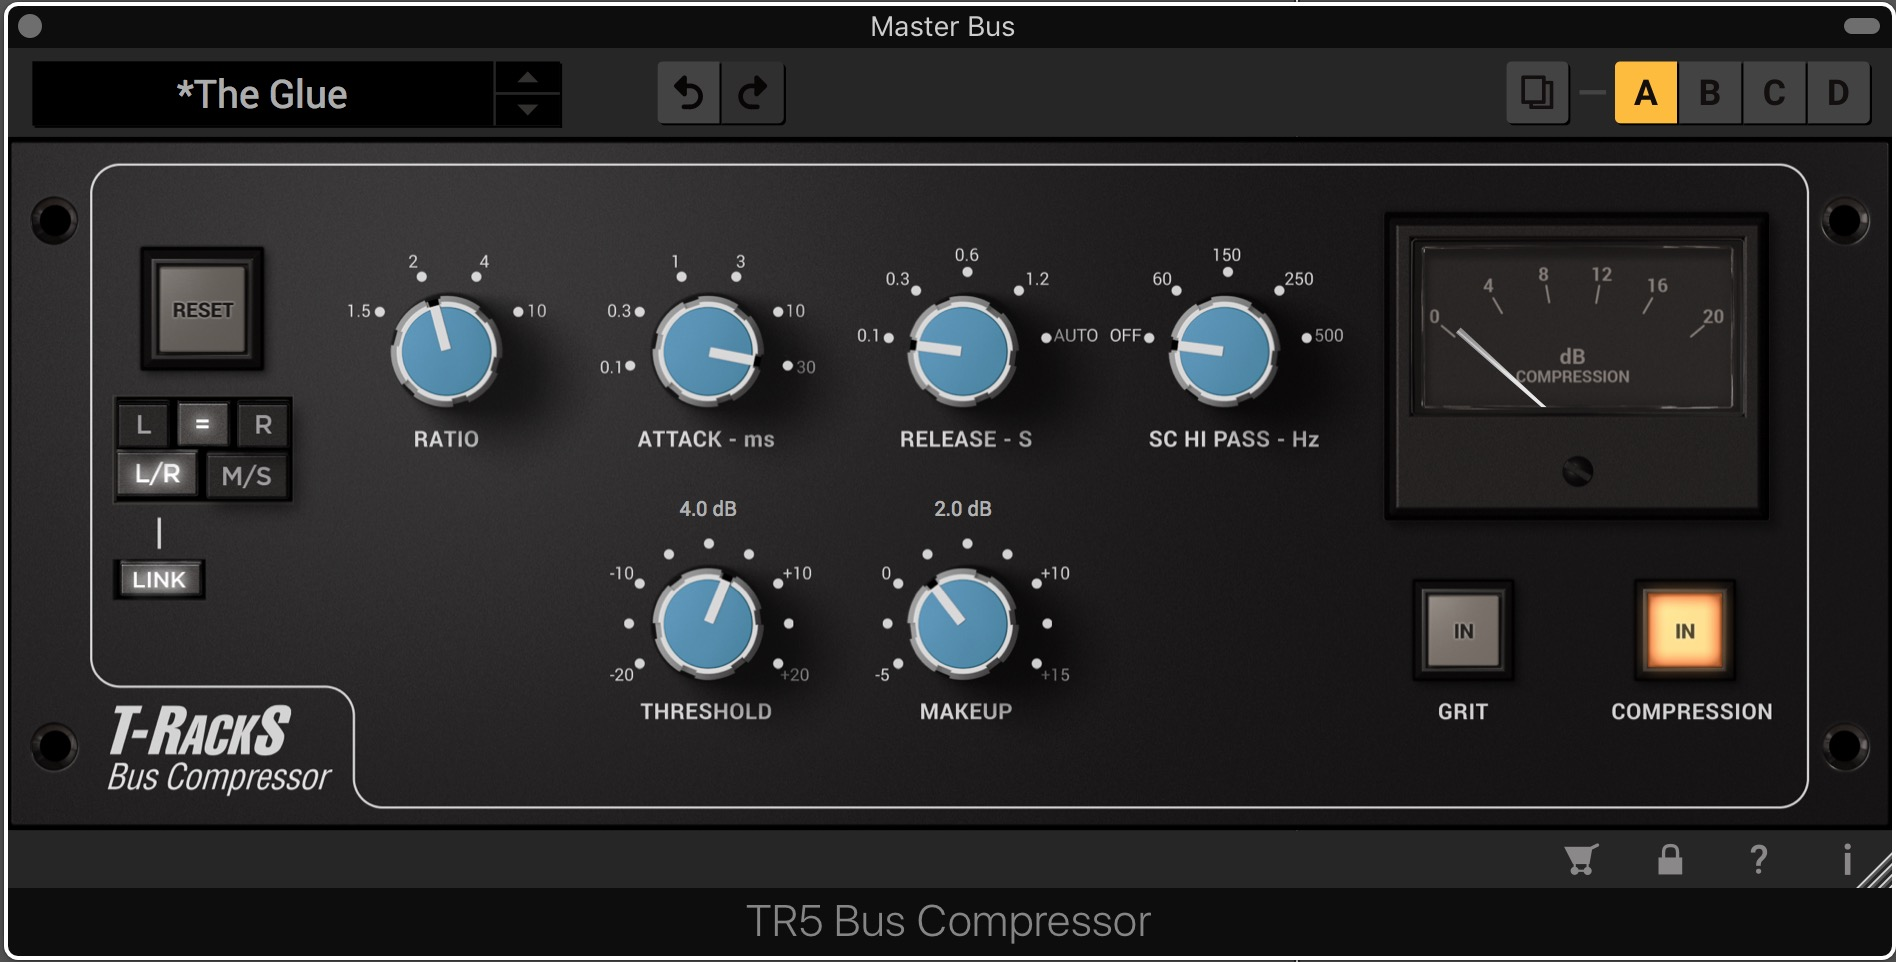 The T-Racks Bus Compressor from IK Multimedia, set with a slow attack and quick release for gentle master bus compression.